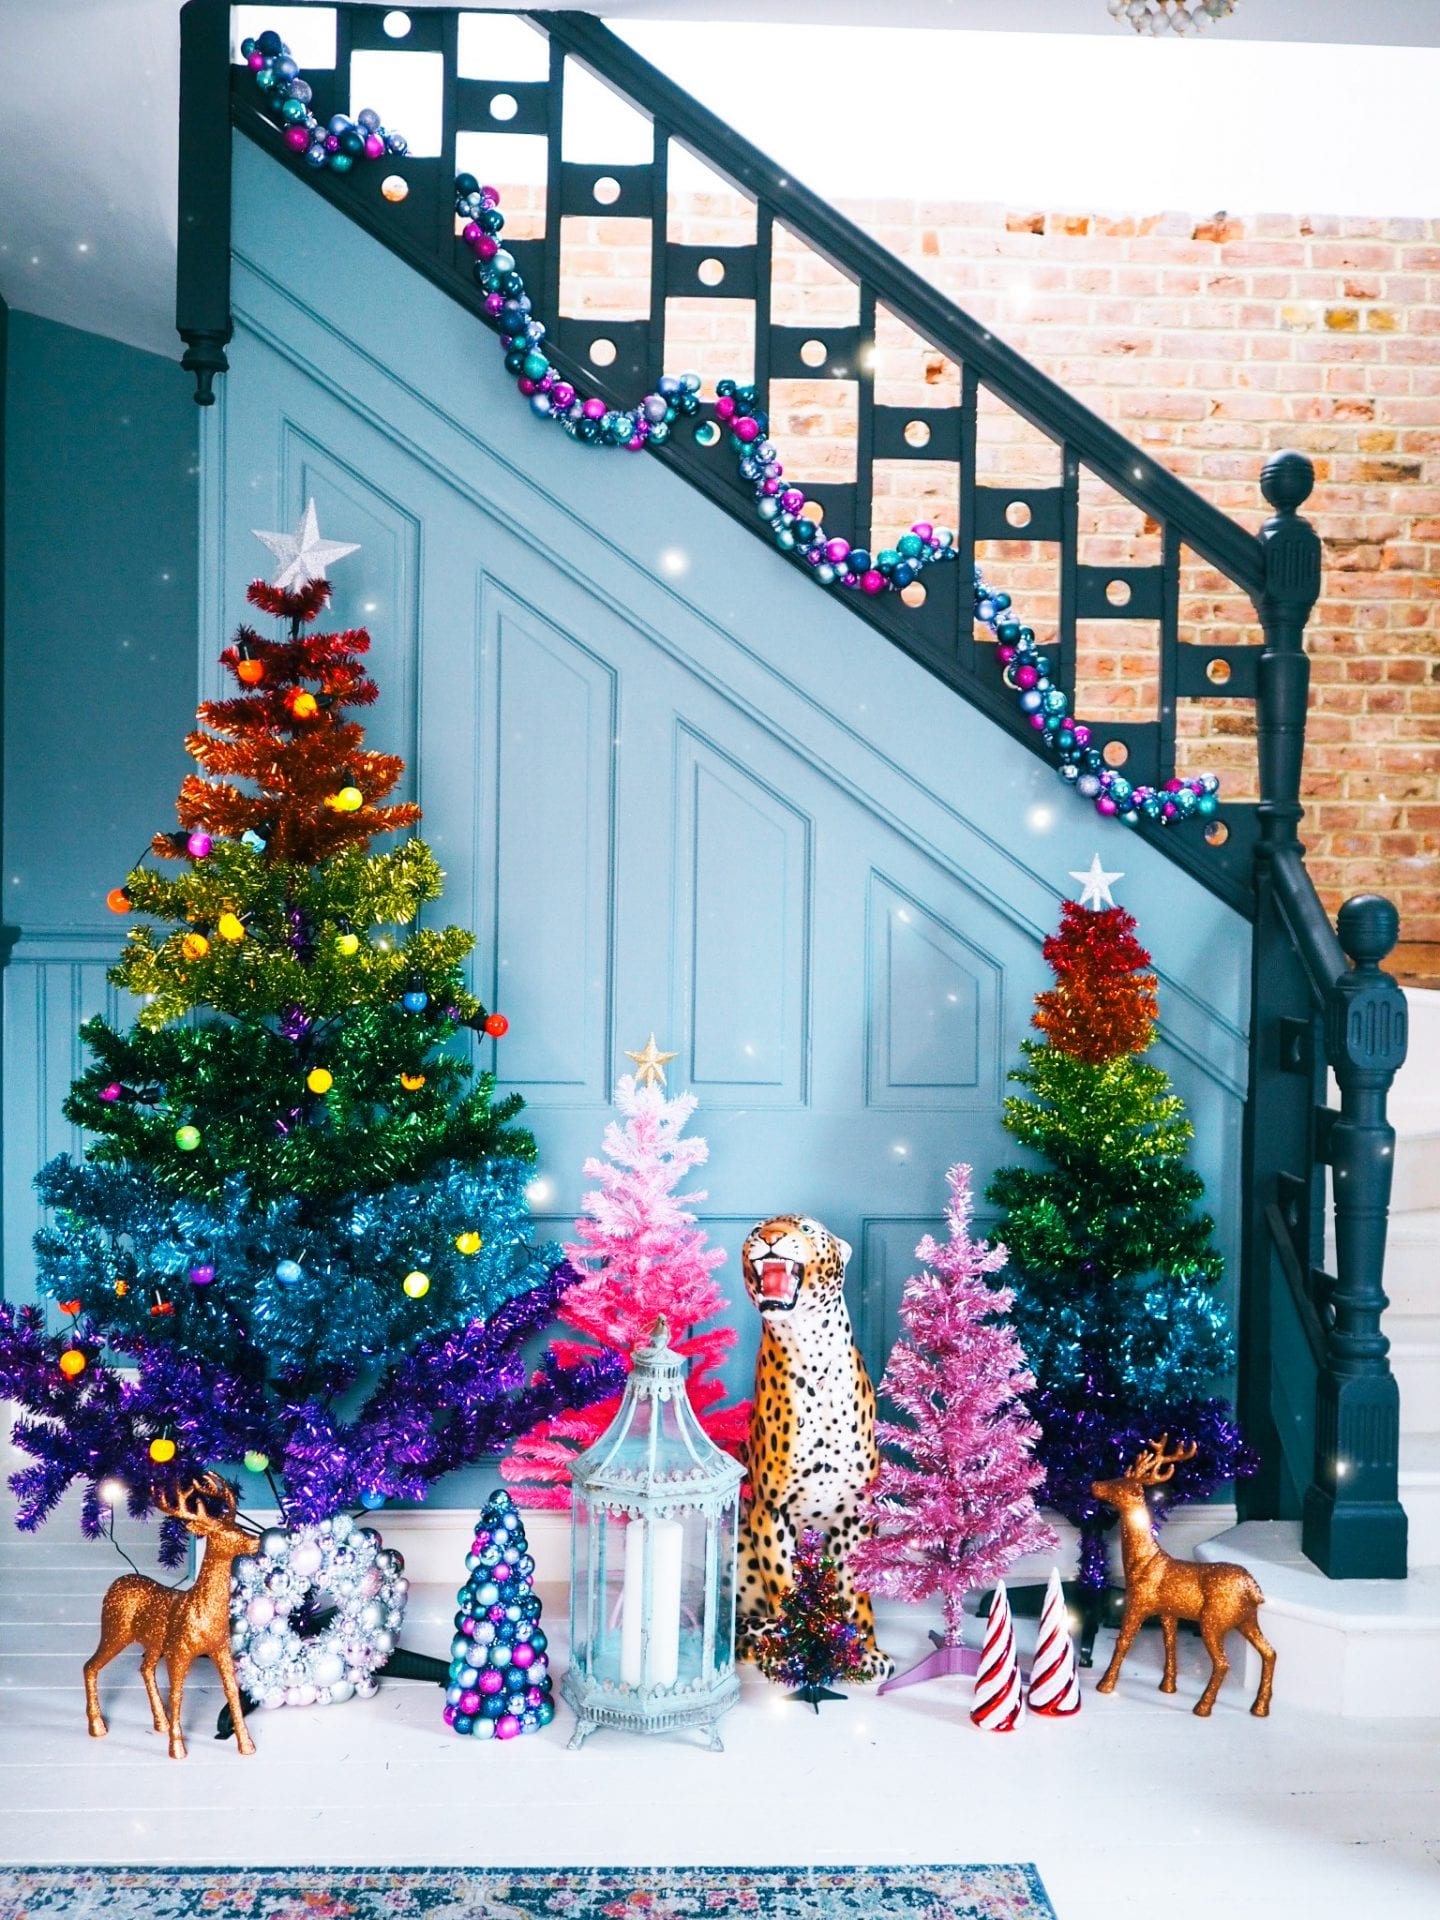 fashion-for-lunch-blog-home-christmas-house-colourful-colour-holiday-decorations-paperchase-rainbow-tree